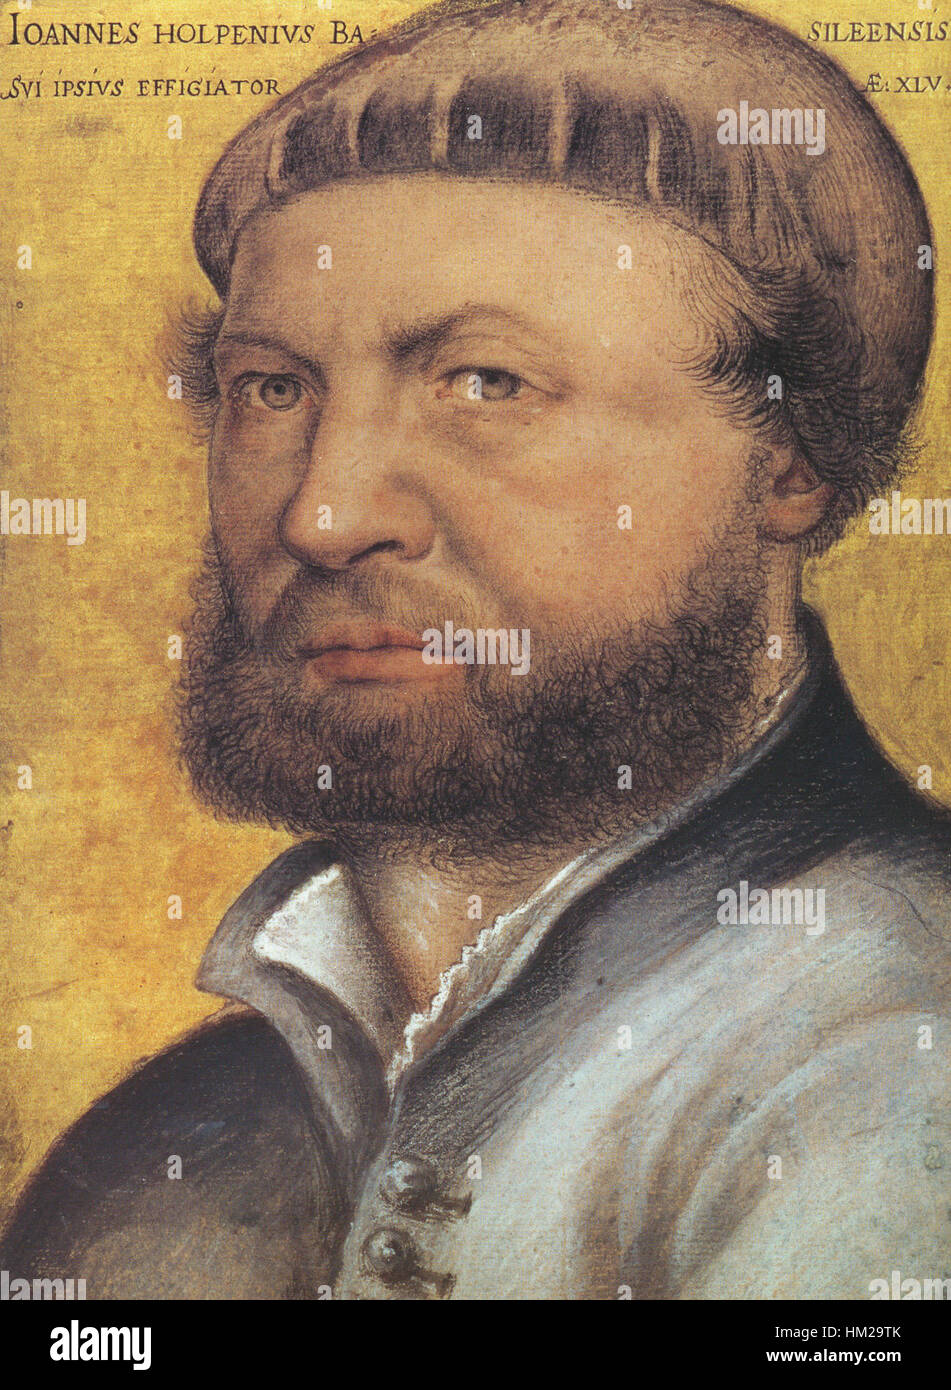 Hans Holbein the Younger, self-portrait - Stock Image